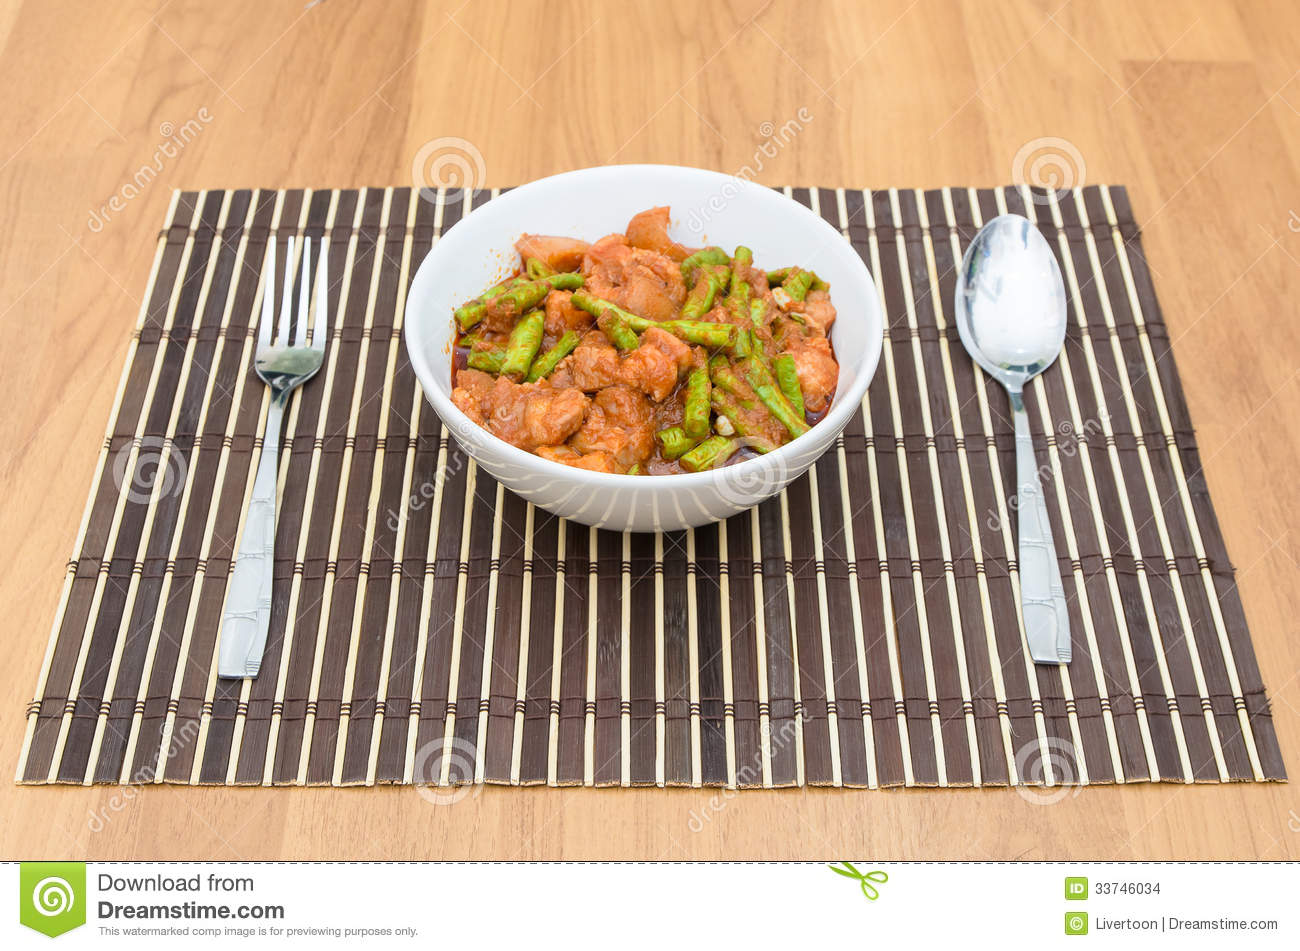 Extremely Hot Stir Fried String Bean With Pork Stock Images - Image ...